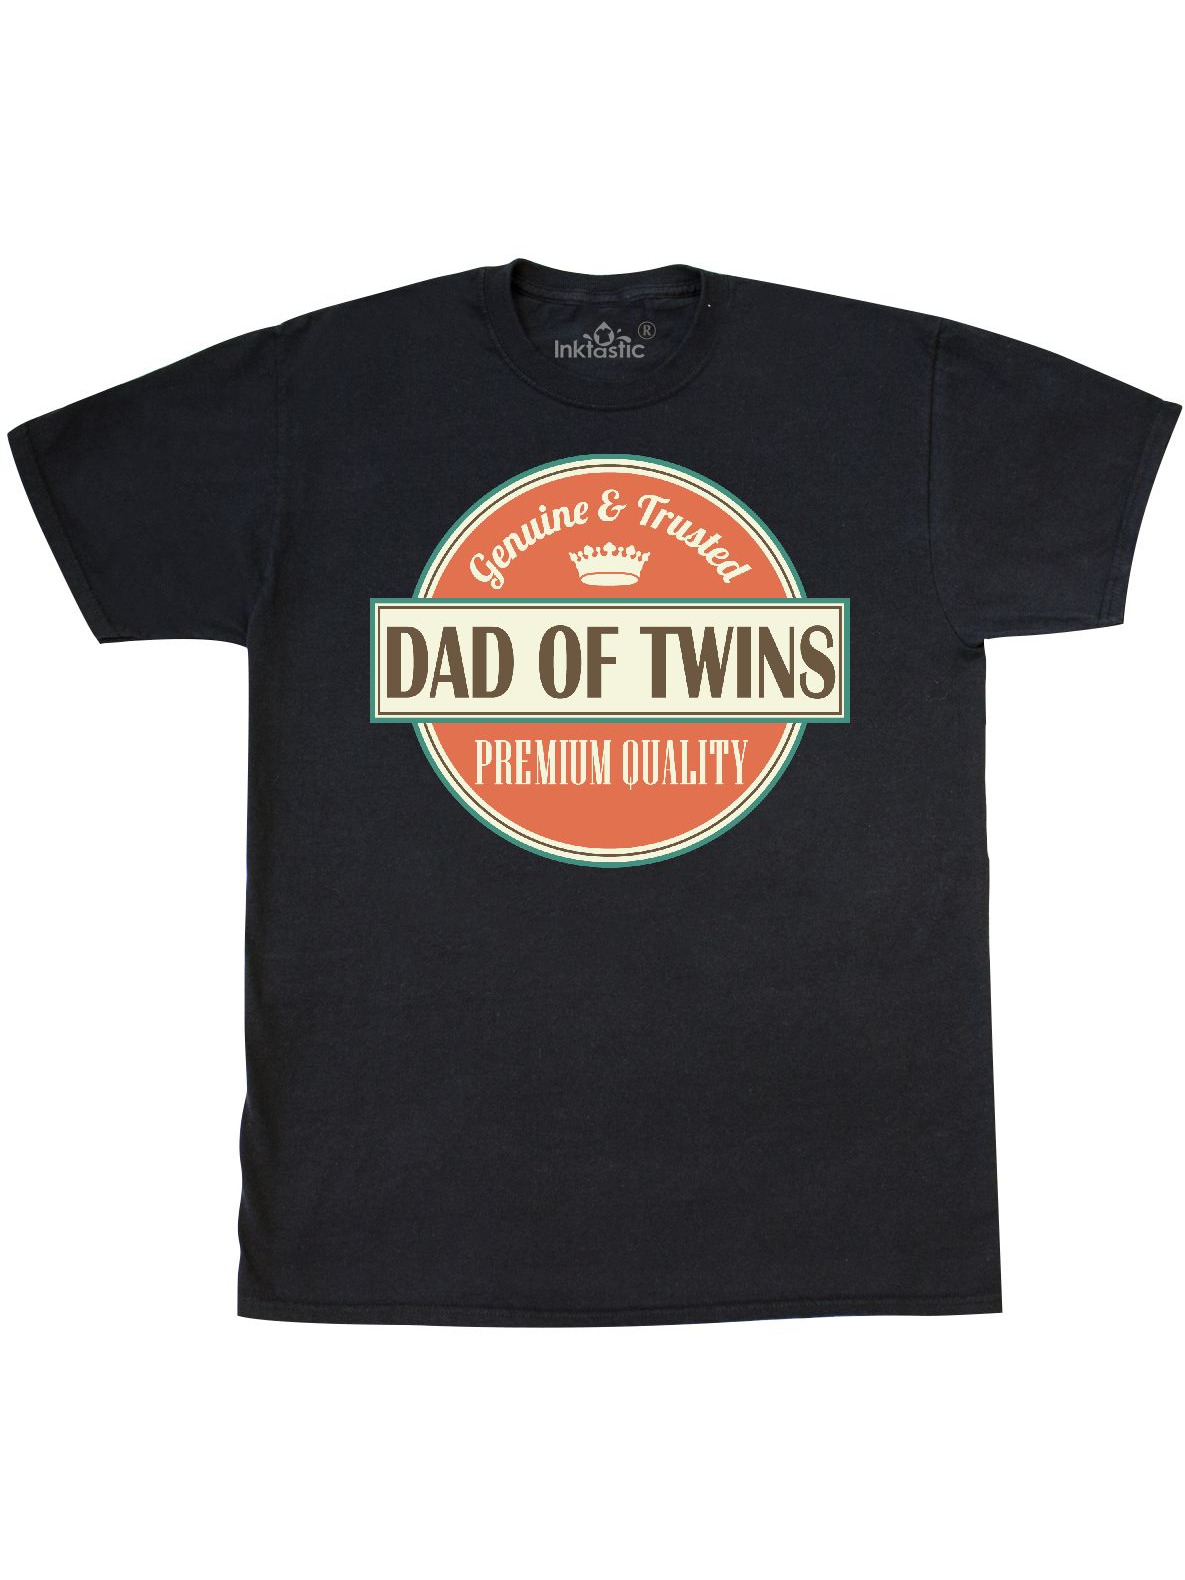 Dad Of Twins vintage T-Shirt